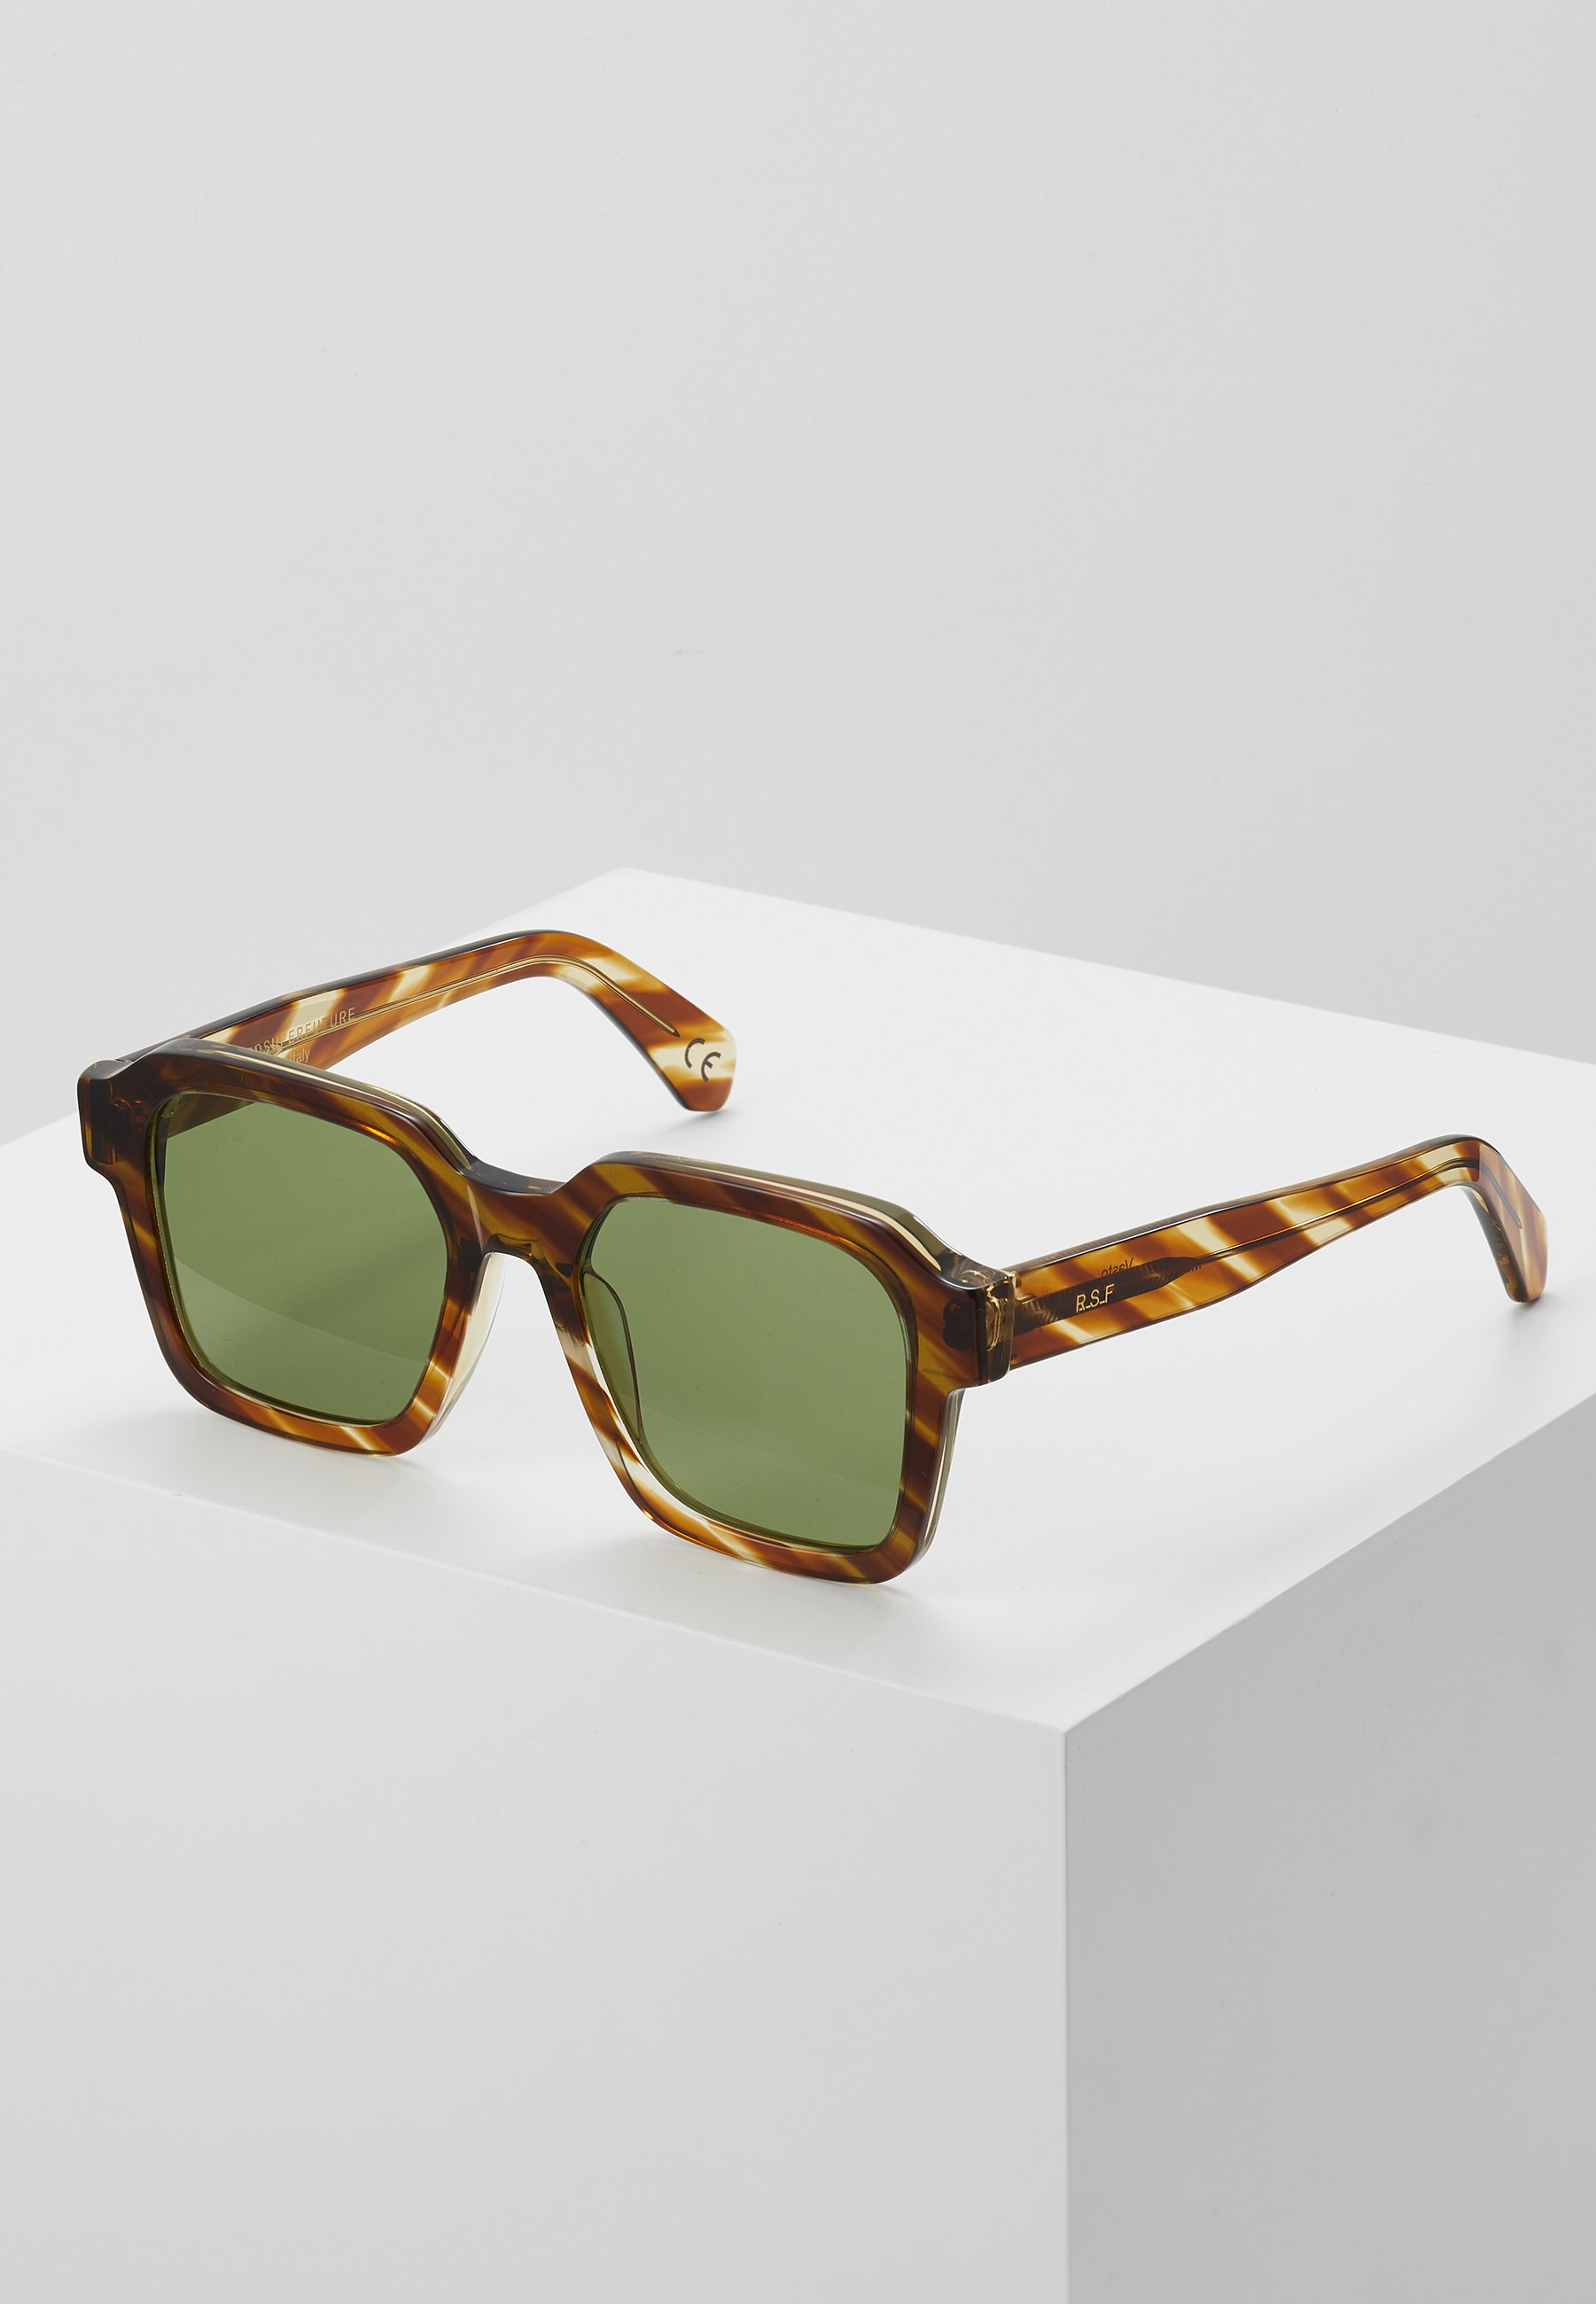 Low Cost Outlet RETROSUPERFUTURE VASTO HAVANA RIGATA - Sunglasses - havana rigata | men's accessories 2020 xlOp6